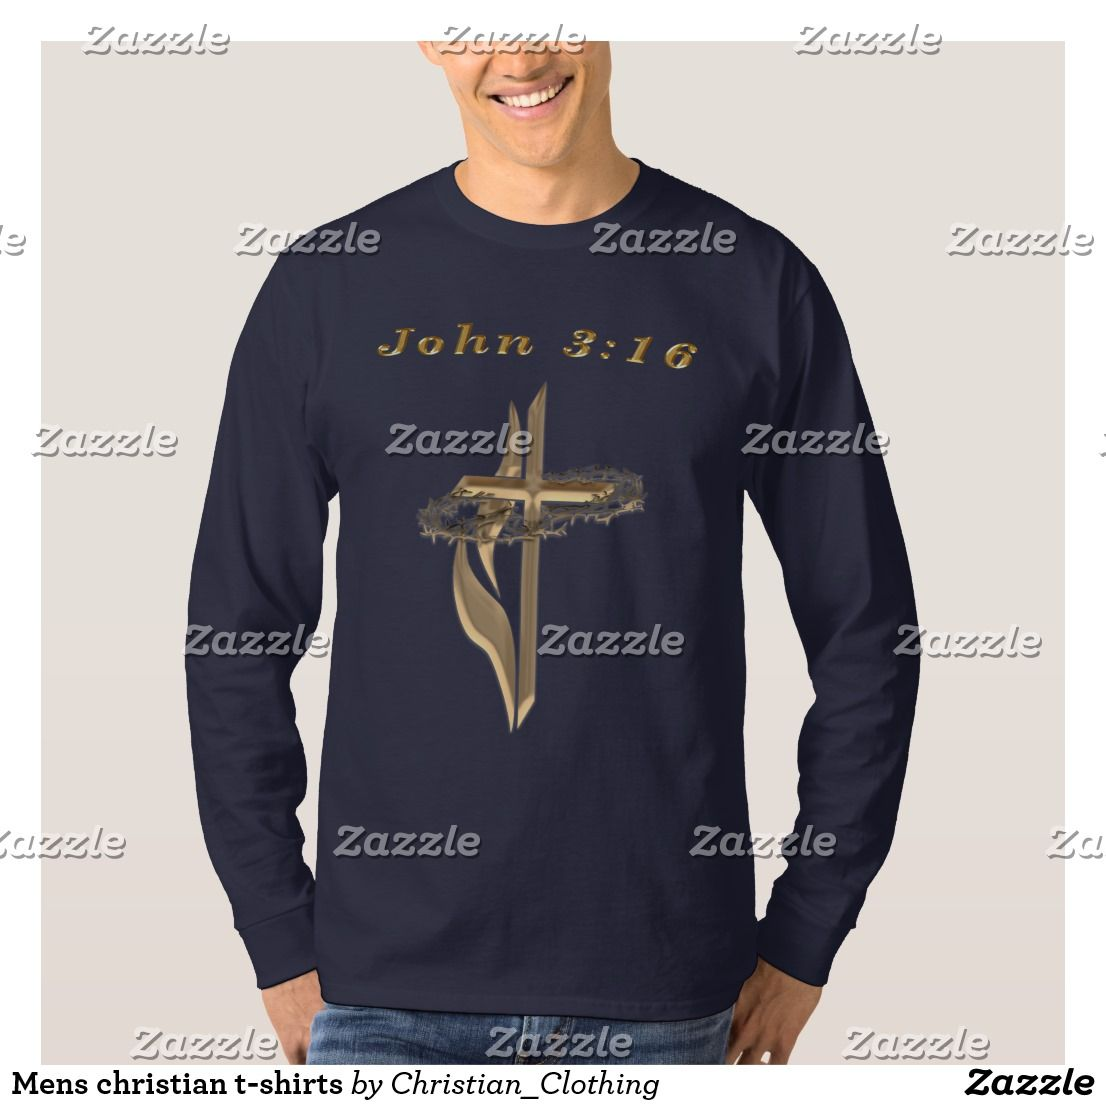 Christian Clothing Designers   Mens Christian T Shirts In 2018 John 3 16 Clothing And Much More